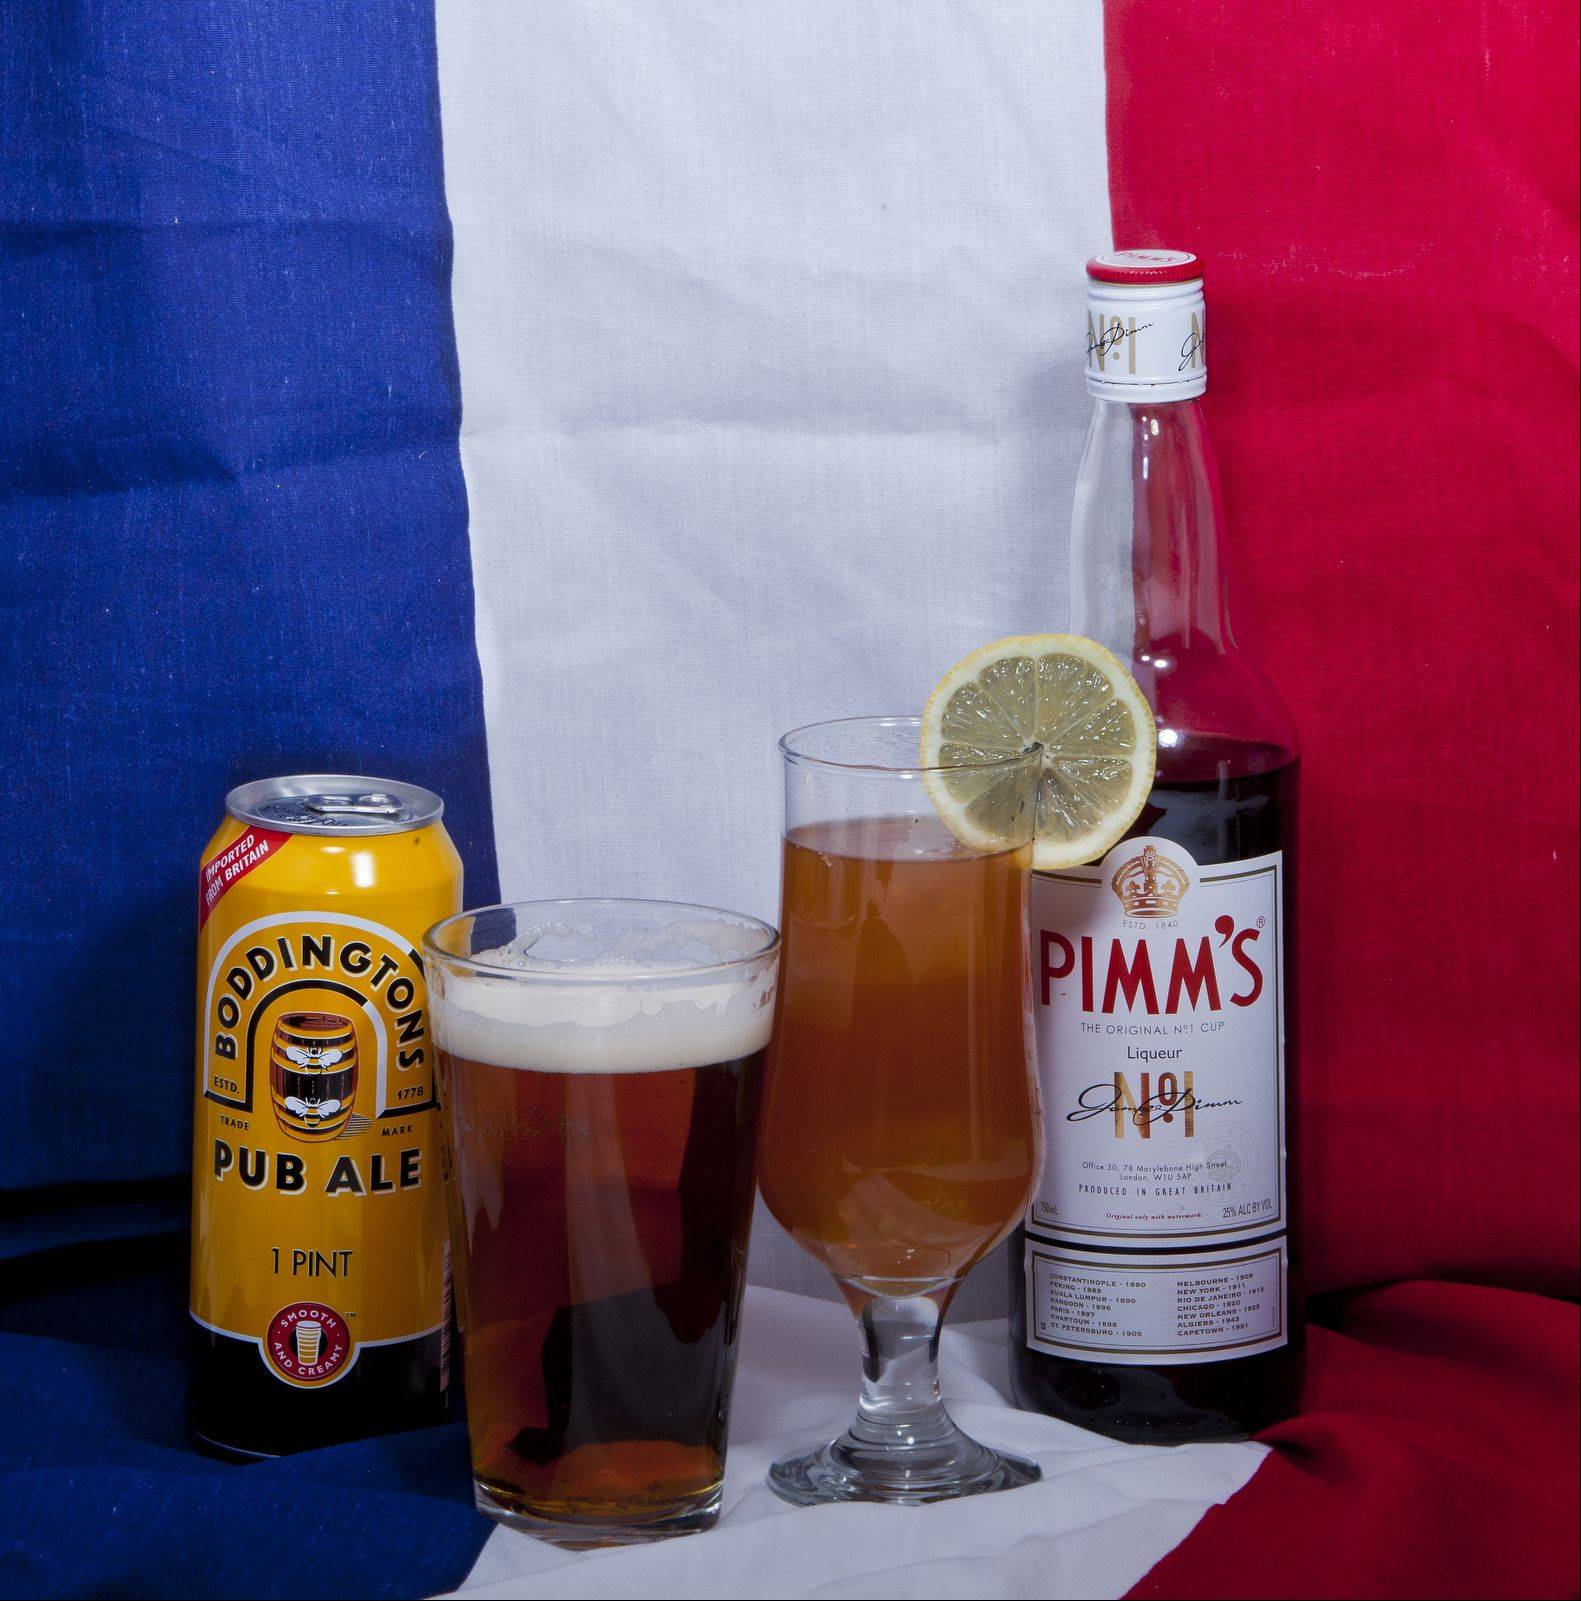 Between the easy availability of English brews and the push to popularize Pimm's No. 1, no one need go thirsty as they watch the Summer Olympics.